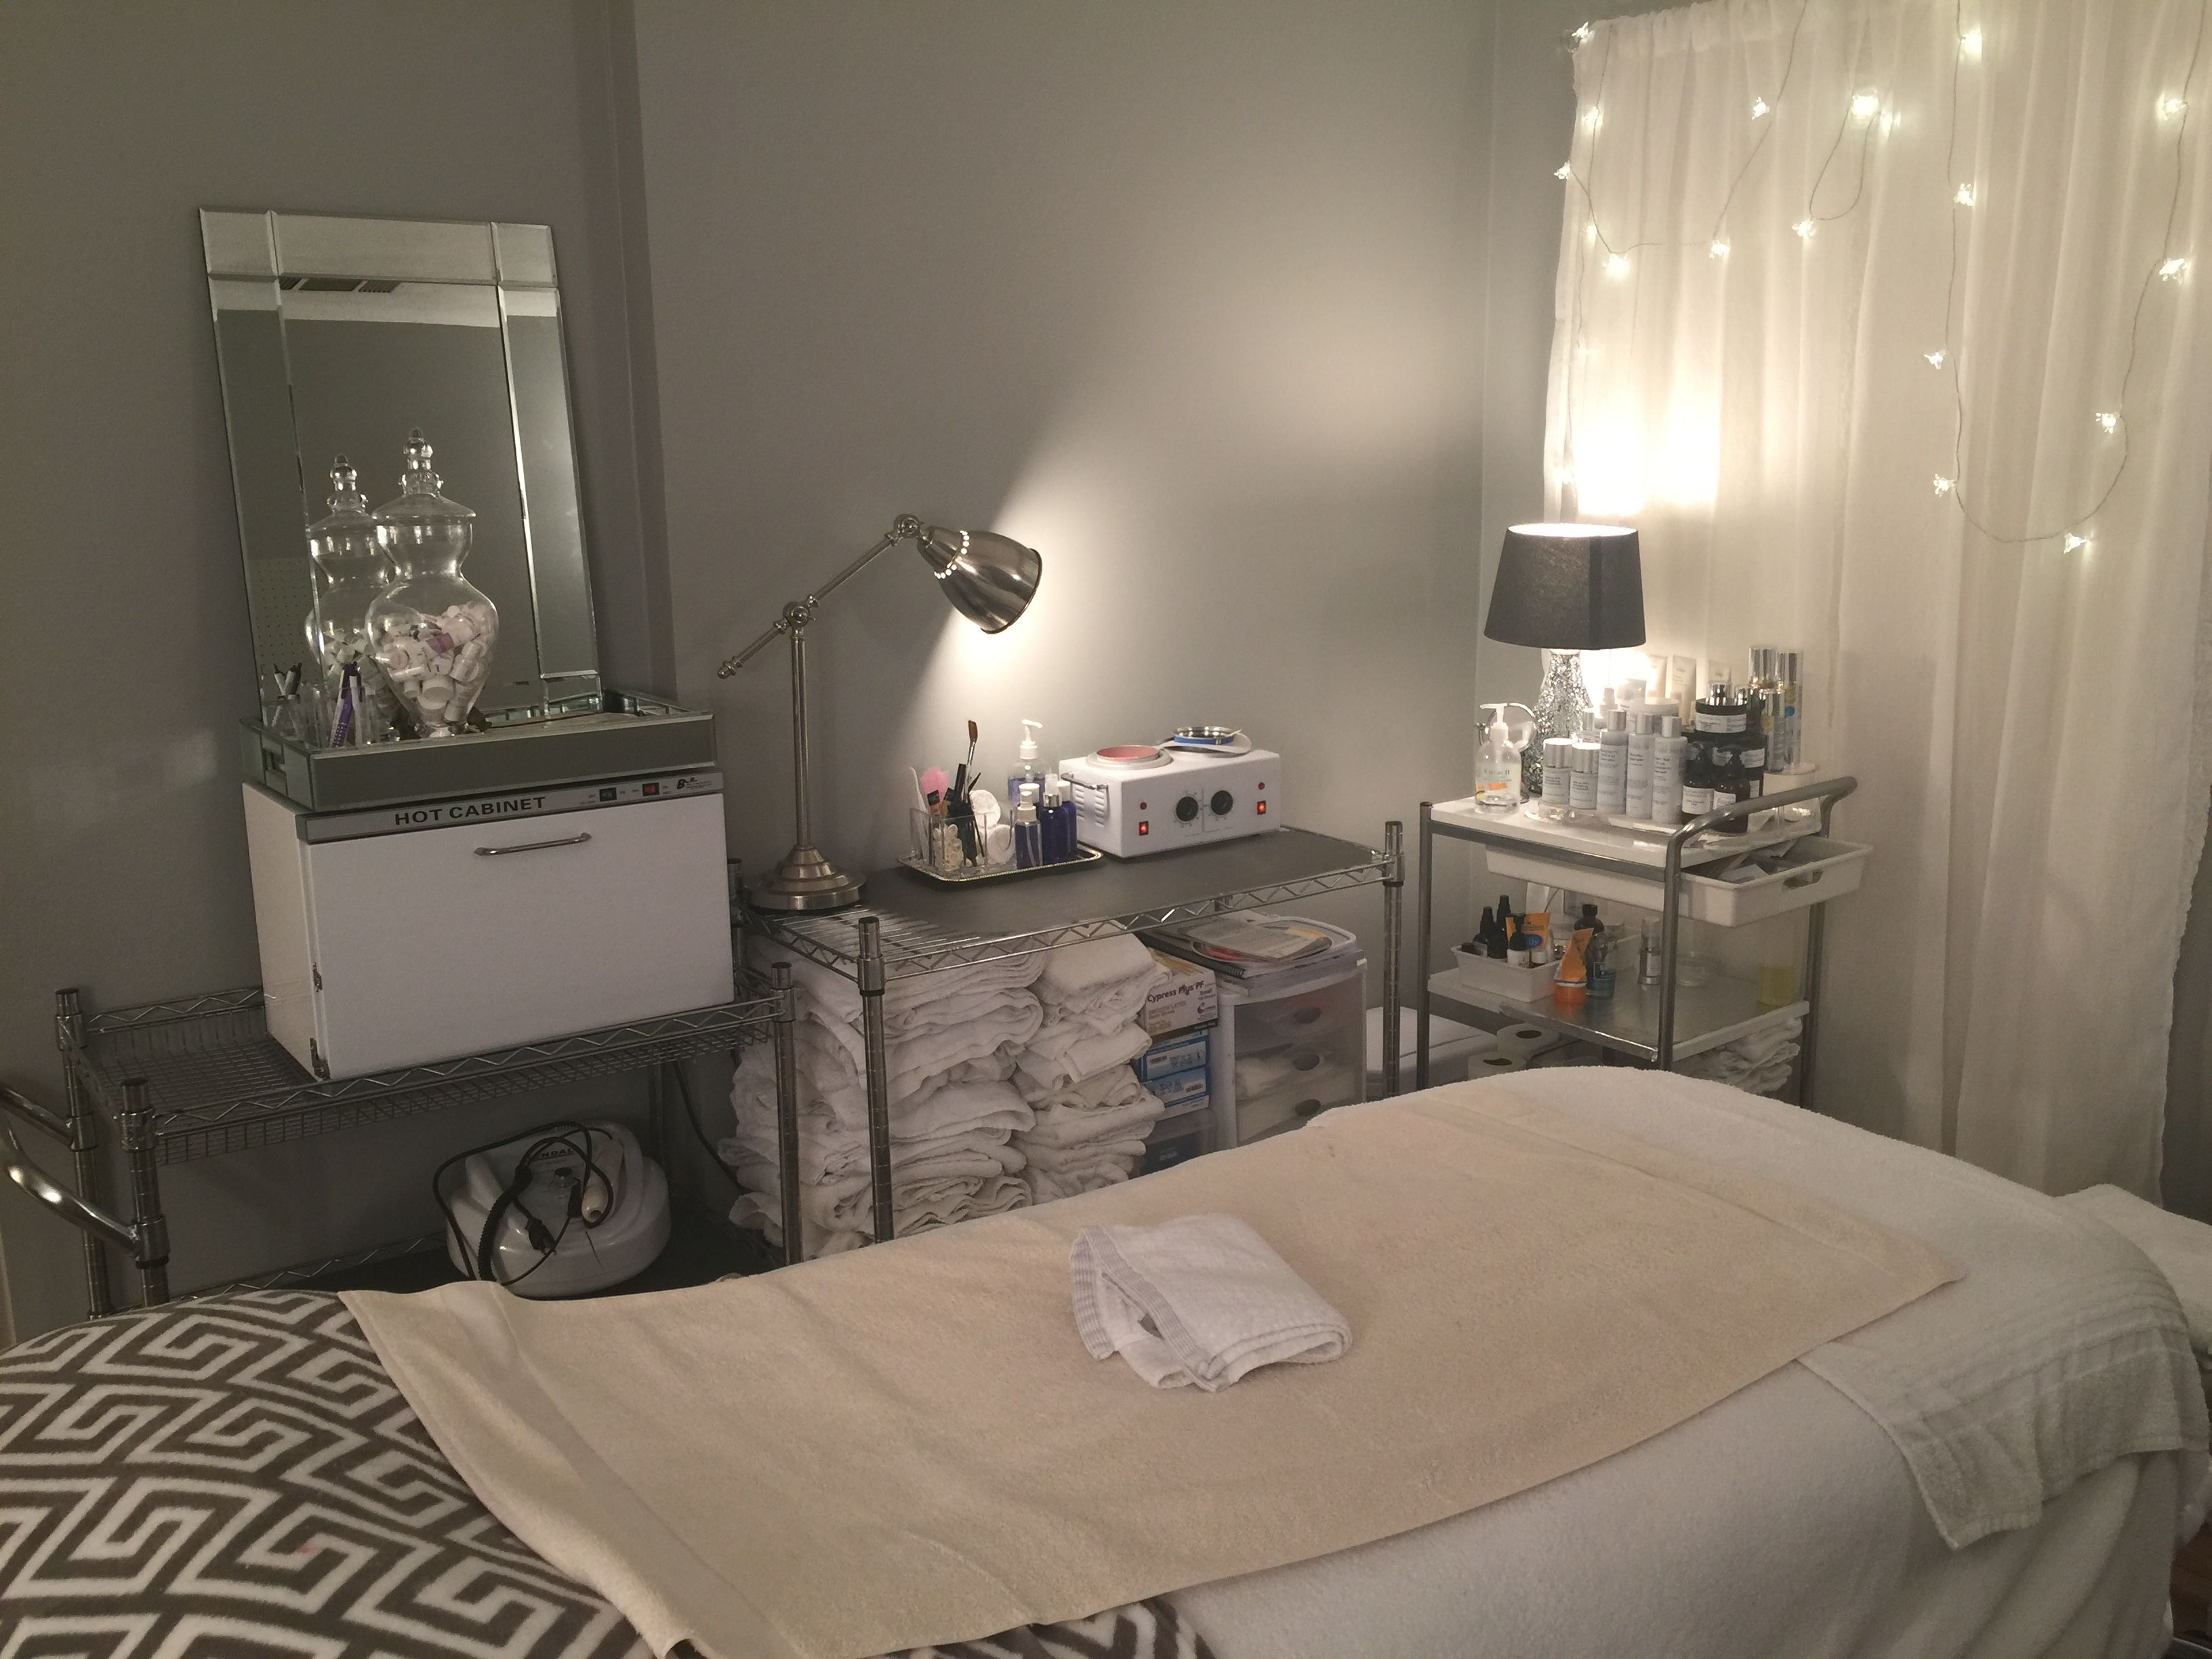 Skincare Studio Skincare By Kimbella Offers A Variety Of Services